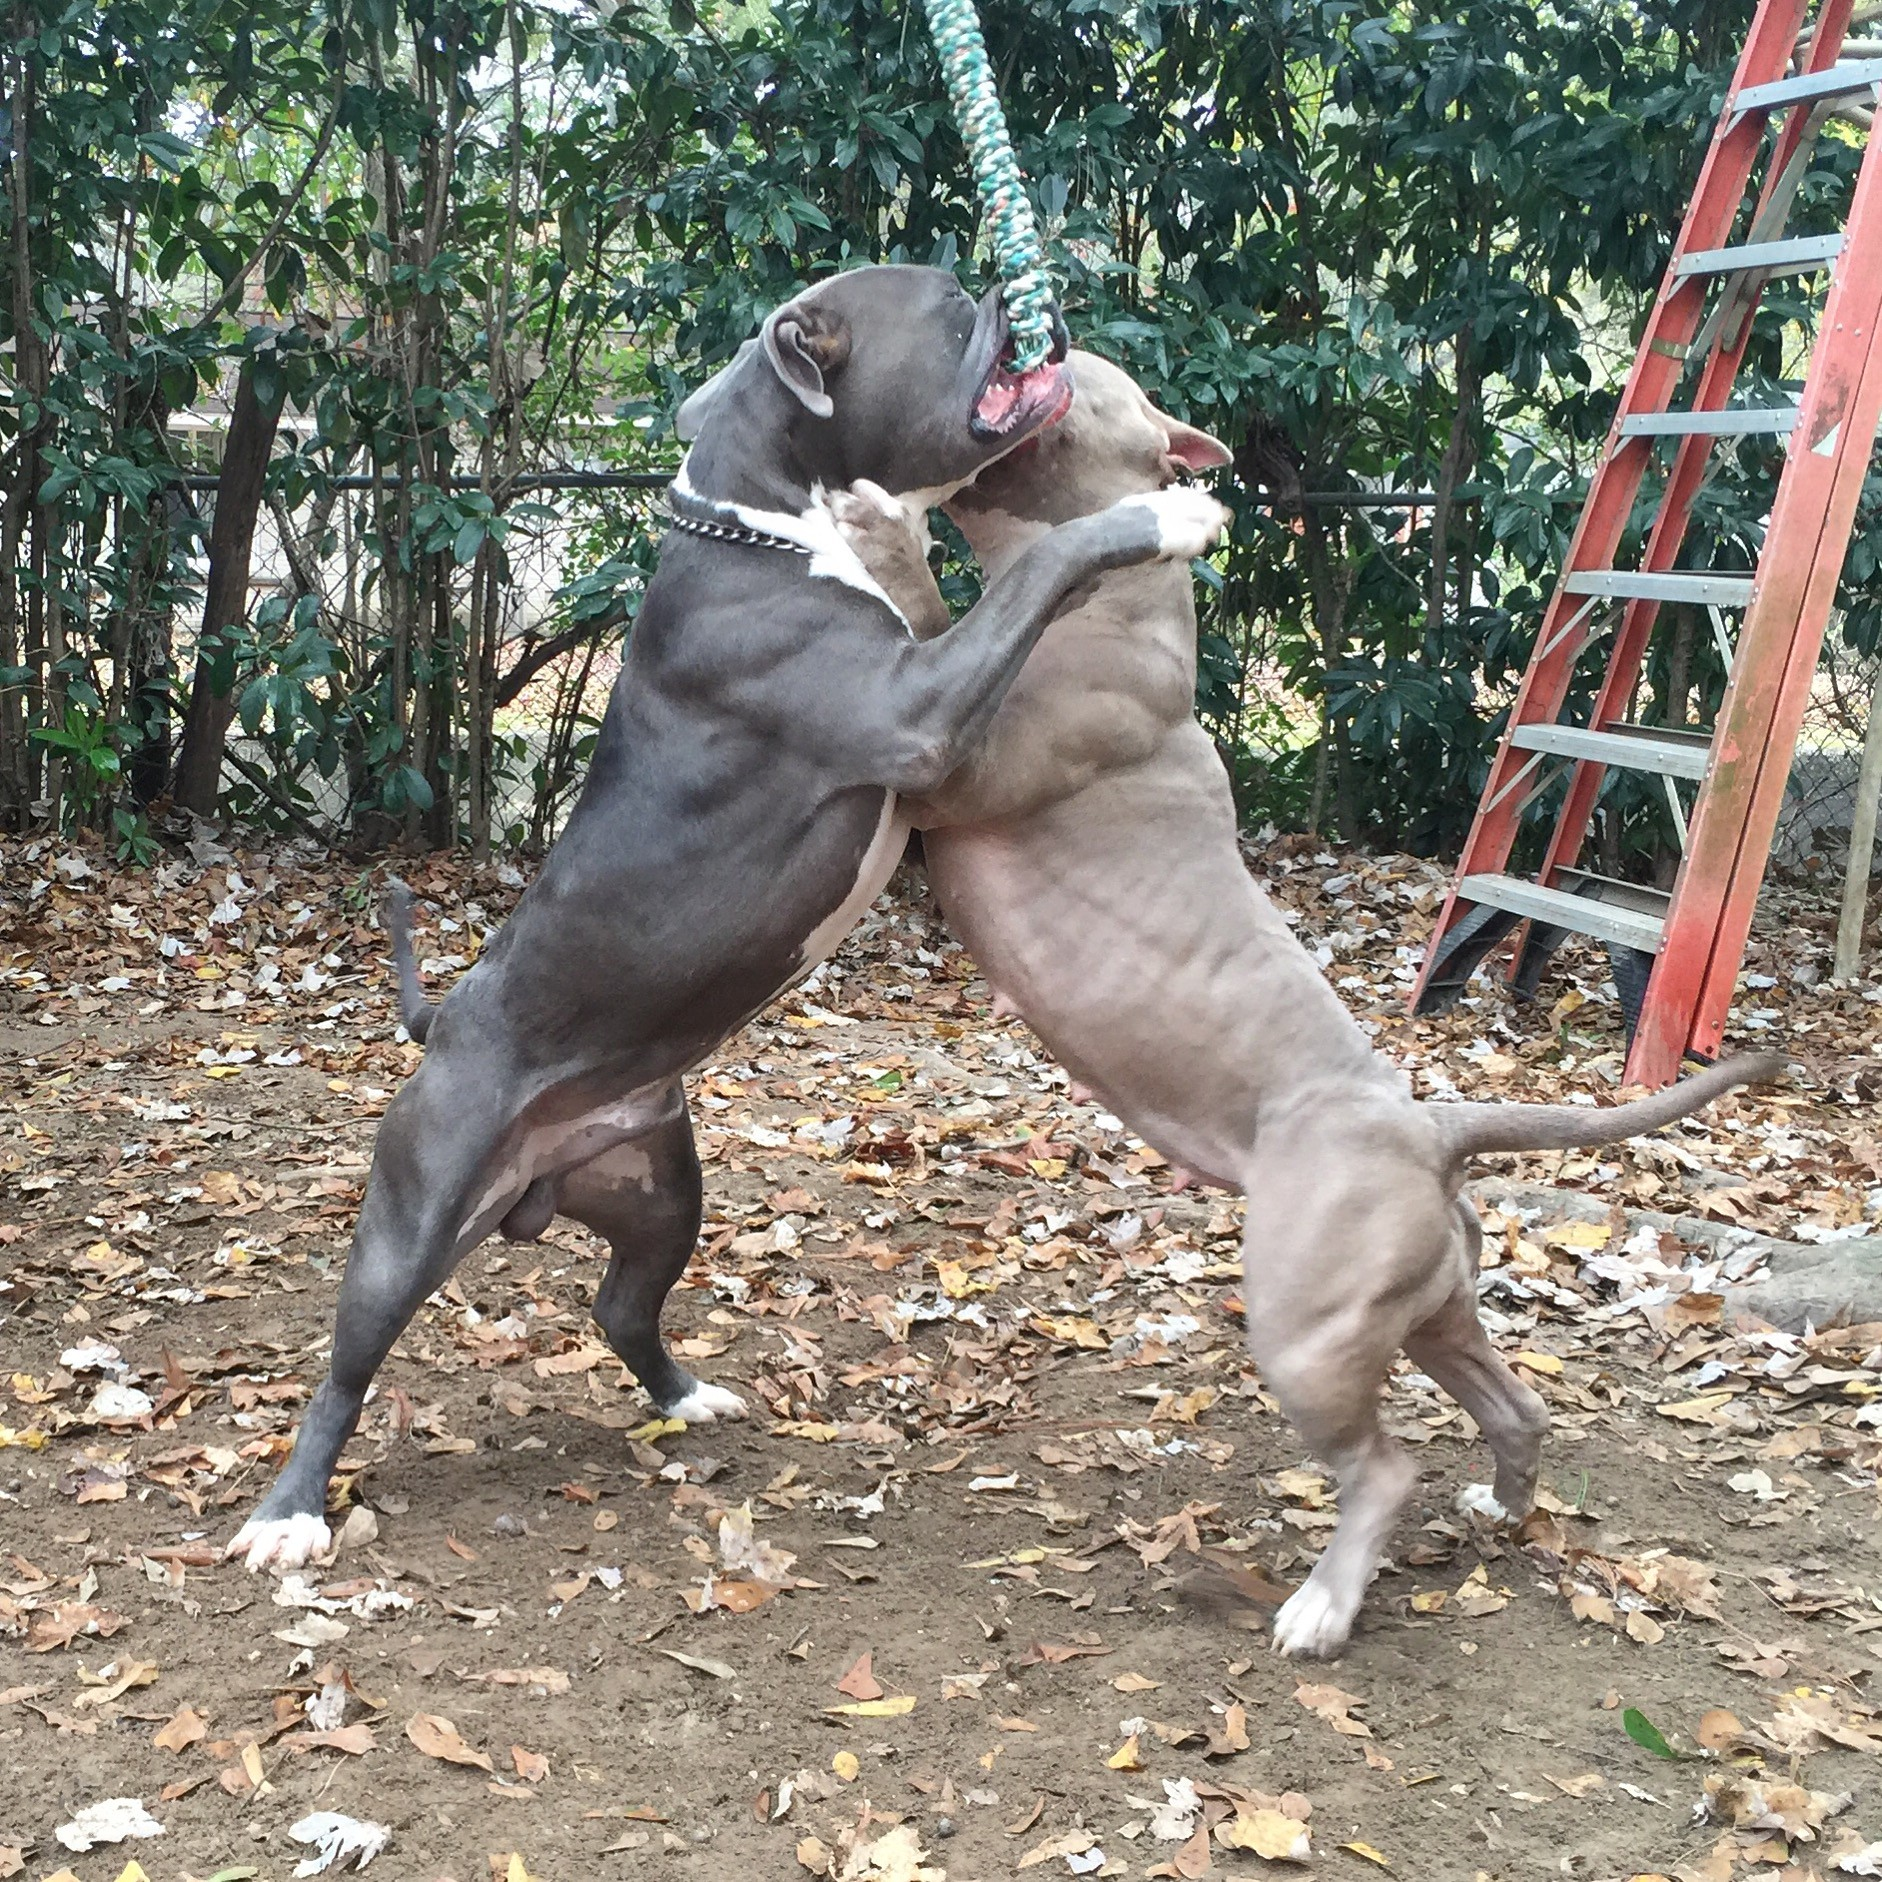 how to make a spring pole for pitbulls